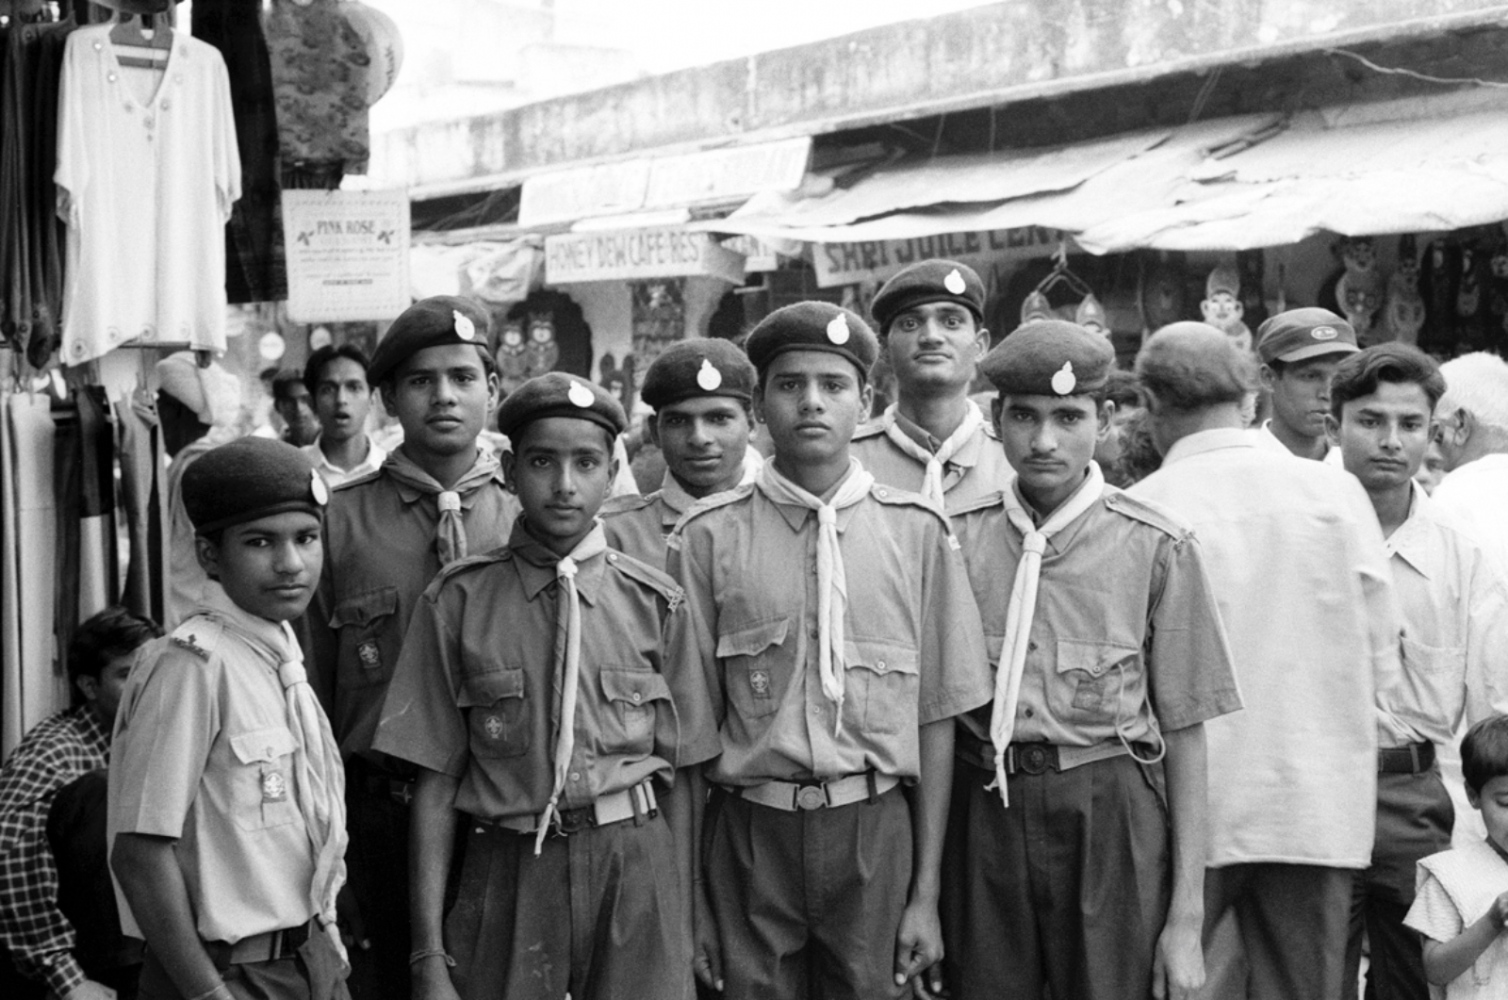 Boy Scouts, Pushkar, India, November 2003